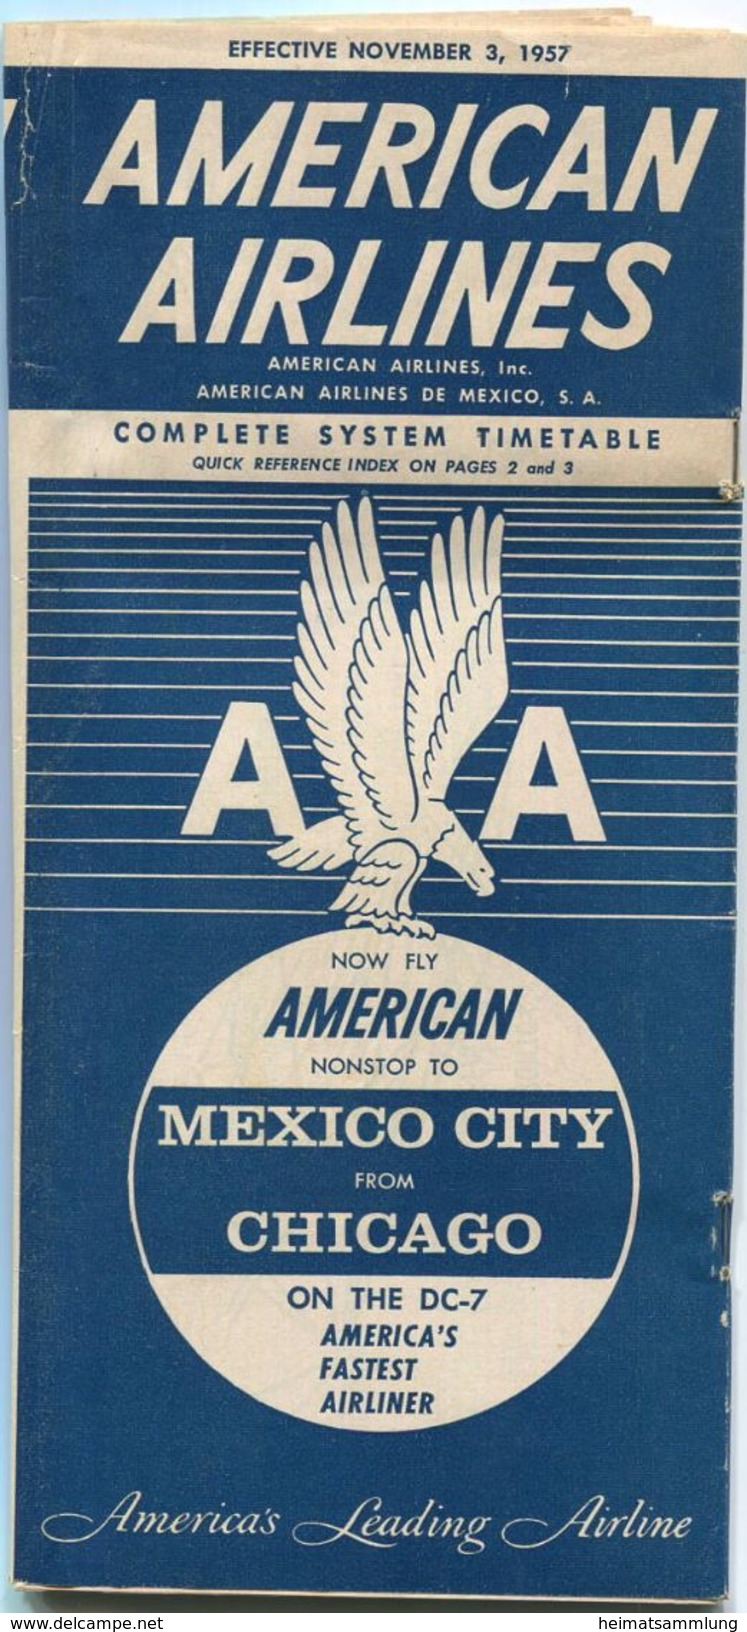 American Airlines - American Airlines De Mexico - Complete System Timetable - 48 Seiten 1957 - World